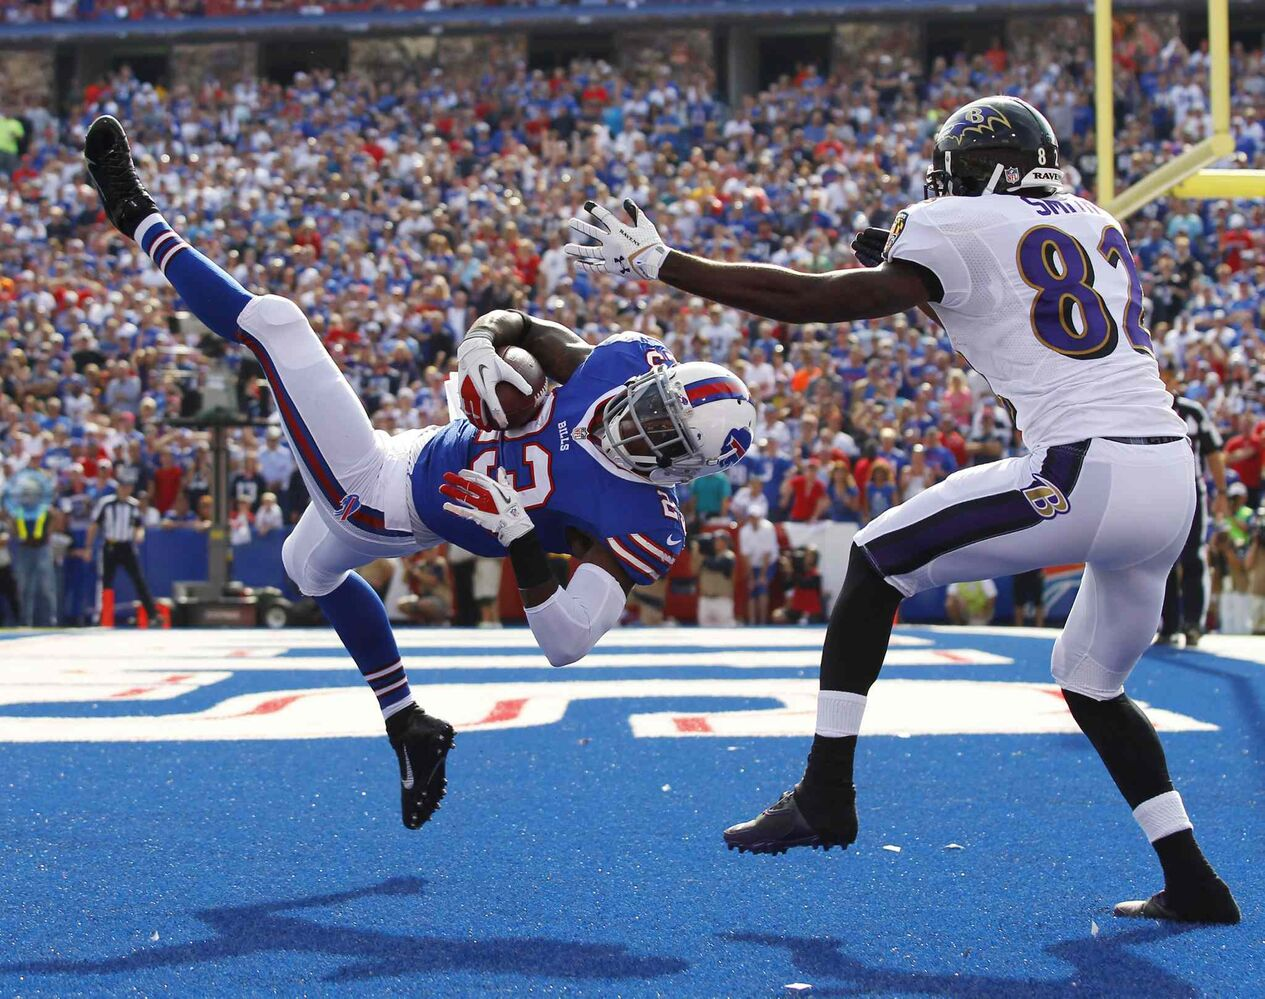 Buffalo Bills safety Aaron Williams (left) intercepts a pass intended for Baltimore Ravens wide receiver Torrey Smith during the Bills 23-20 victory Sunday in Orchard Park, N.Y. (Bill Wippert / The Associated Press)